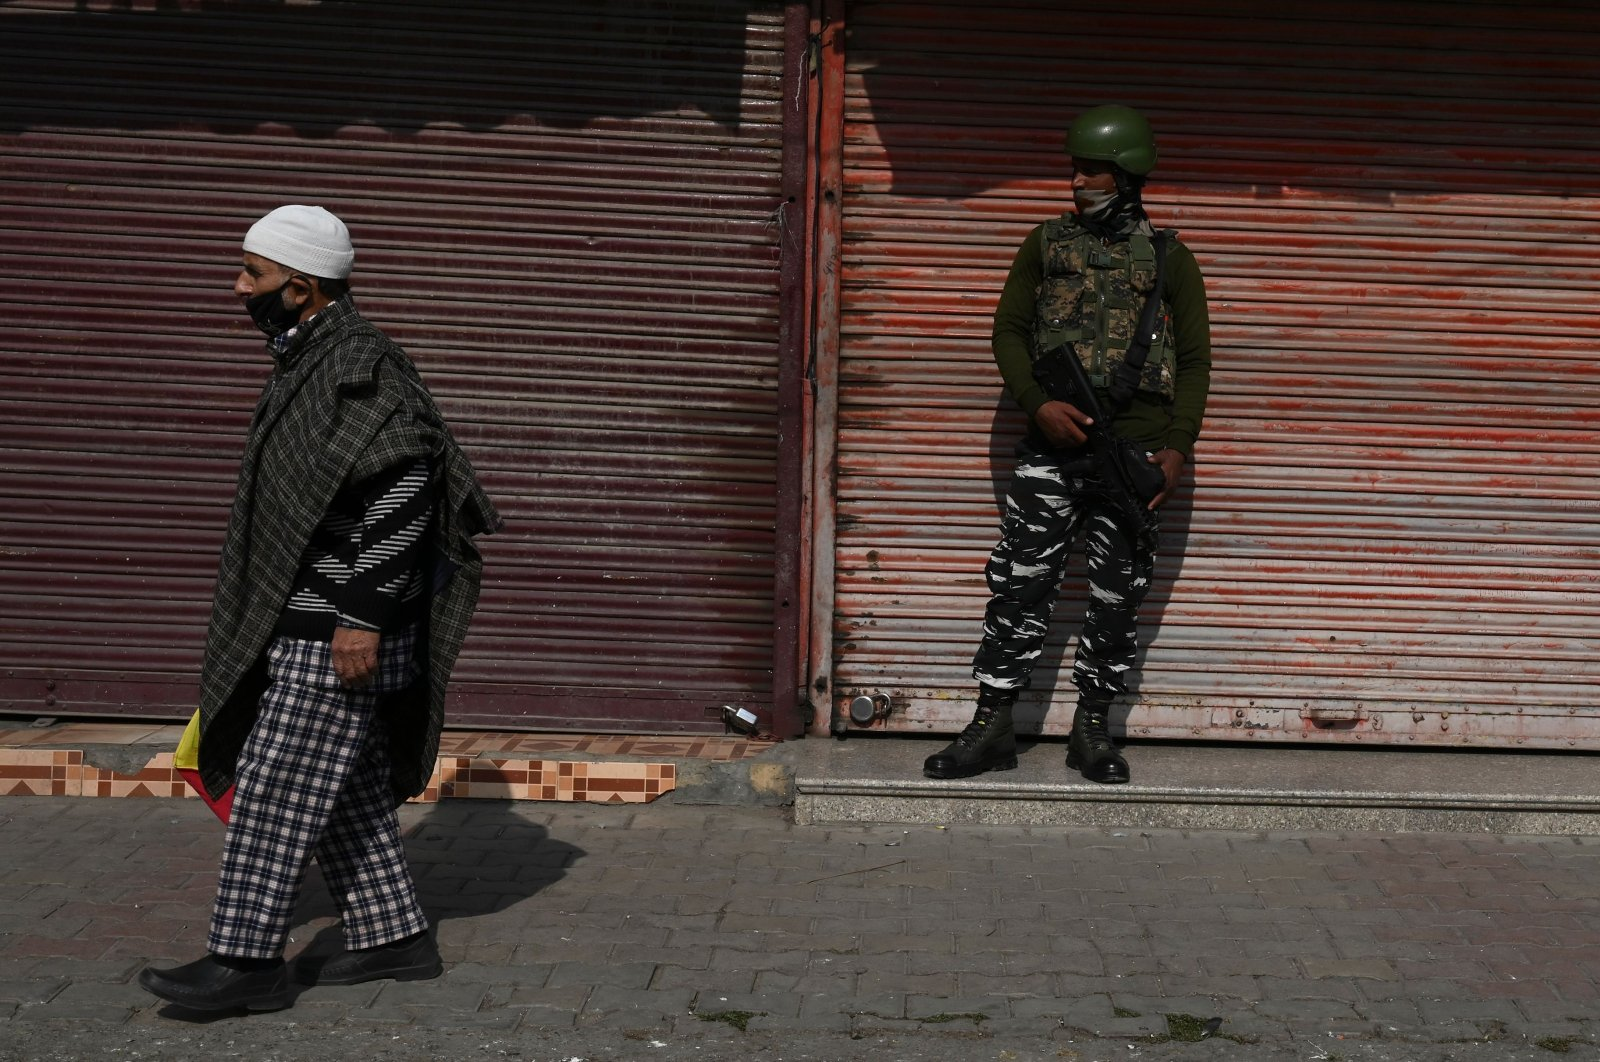 A resident walks past an Indian army soldier standing guard next to closed shops during a one-day strike called by the All Parties Hurriyat Conference (APHC) against the Indian government's decision to open Kashmir land for all Indians, in Srinagar on Oct. 31, 2020. (AFP Photo)